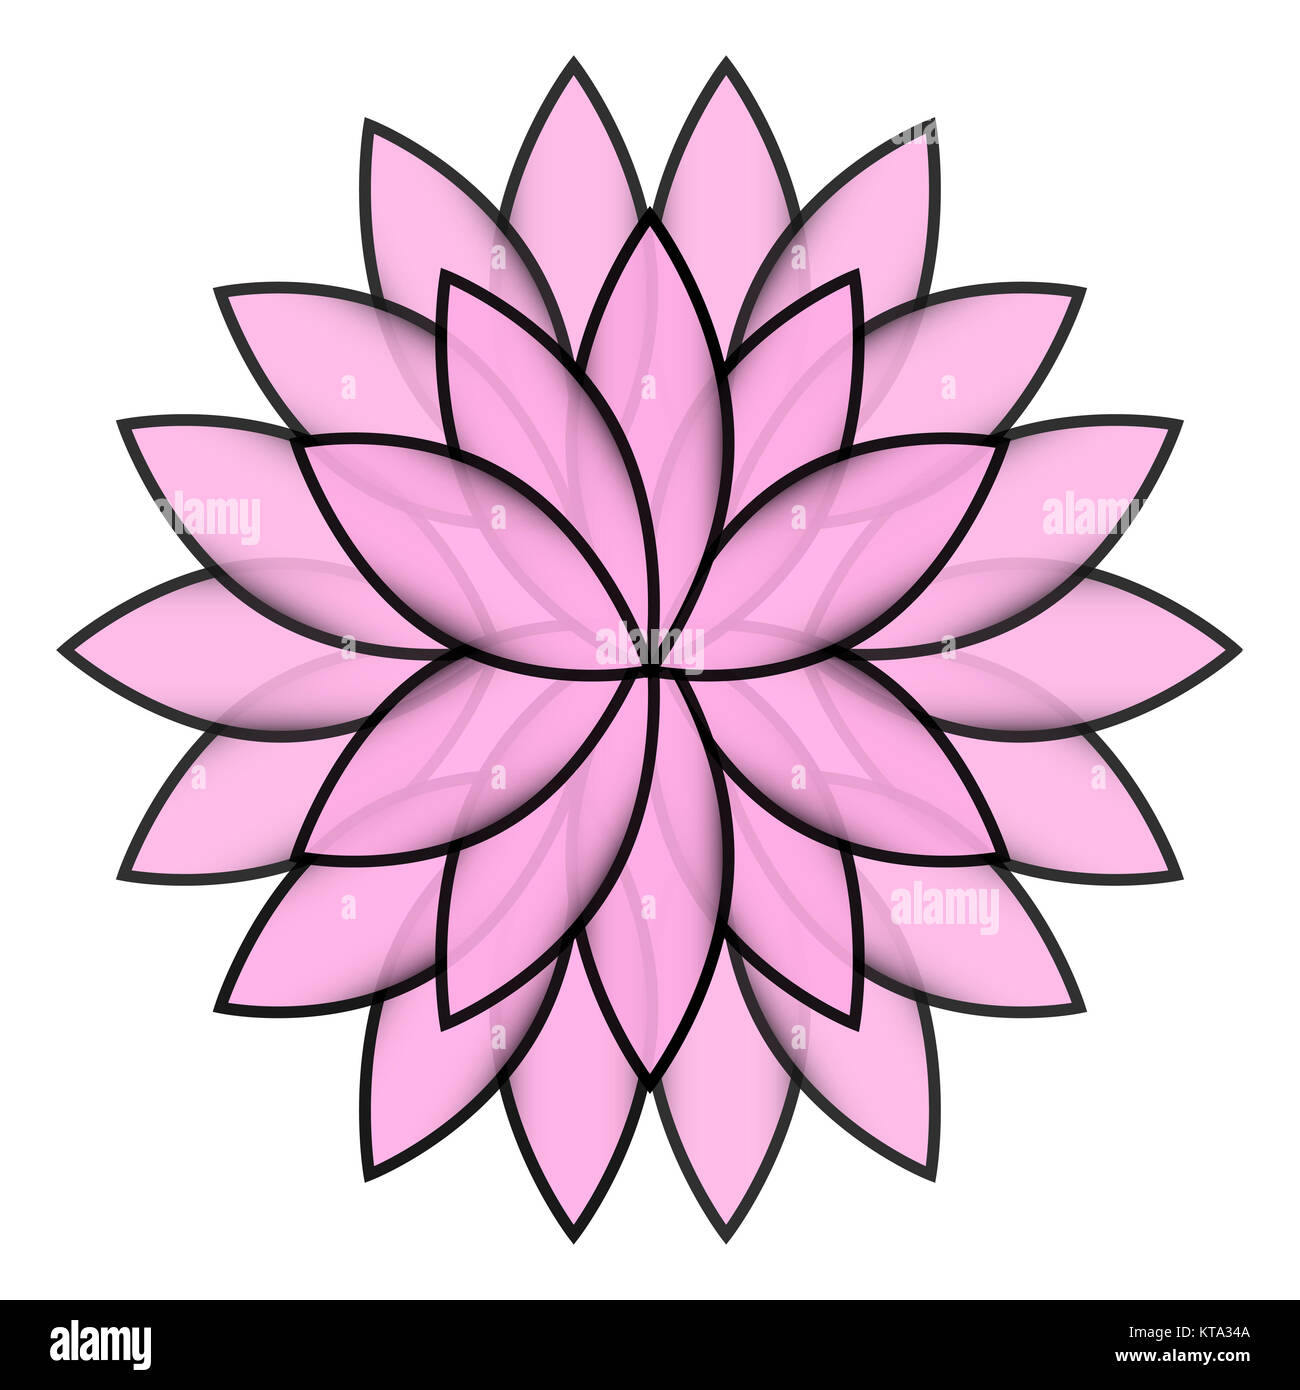 Pink flower lotus on white background isolated stock photo royalty pink flower lotus on white background isolated izmirmasajfo